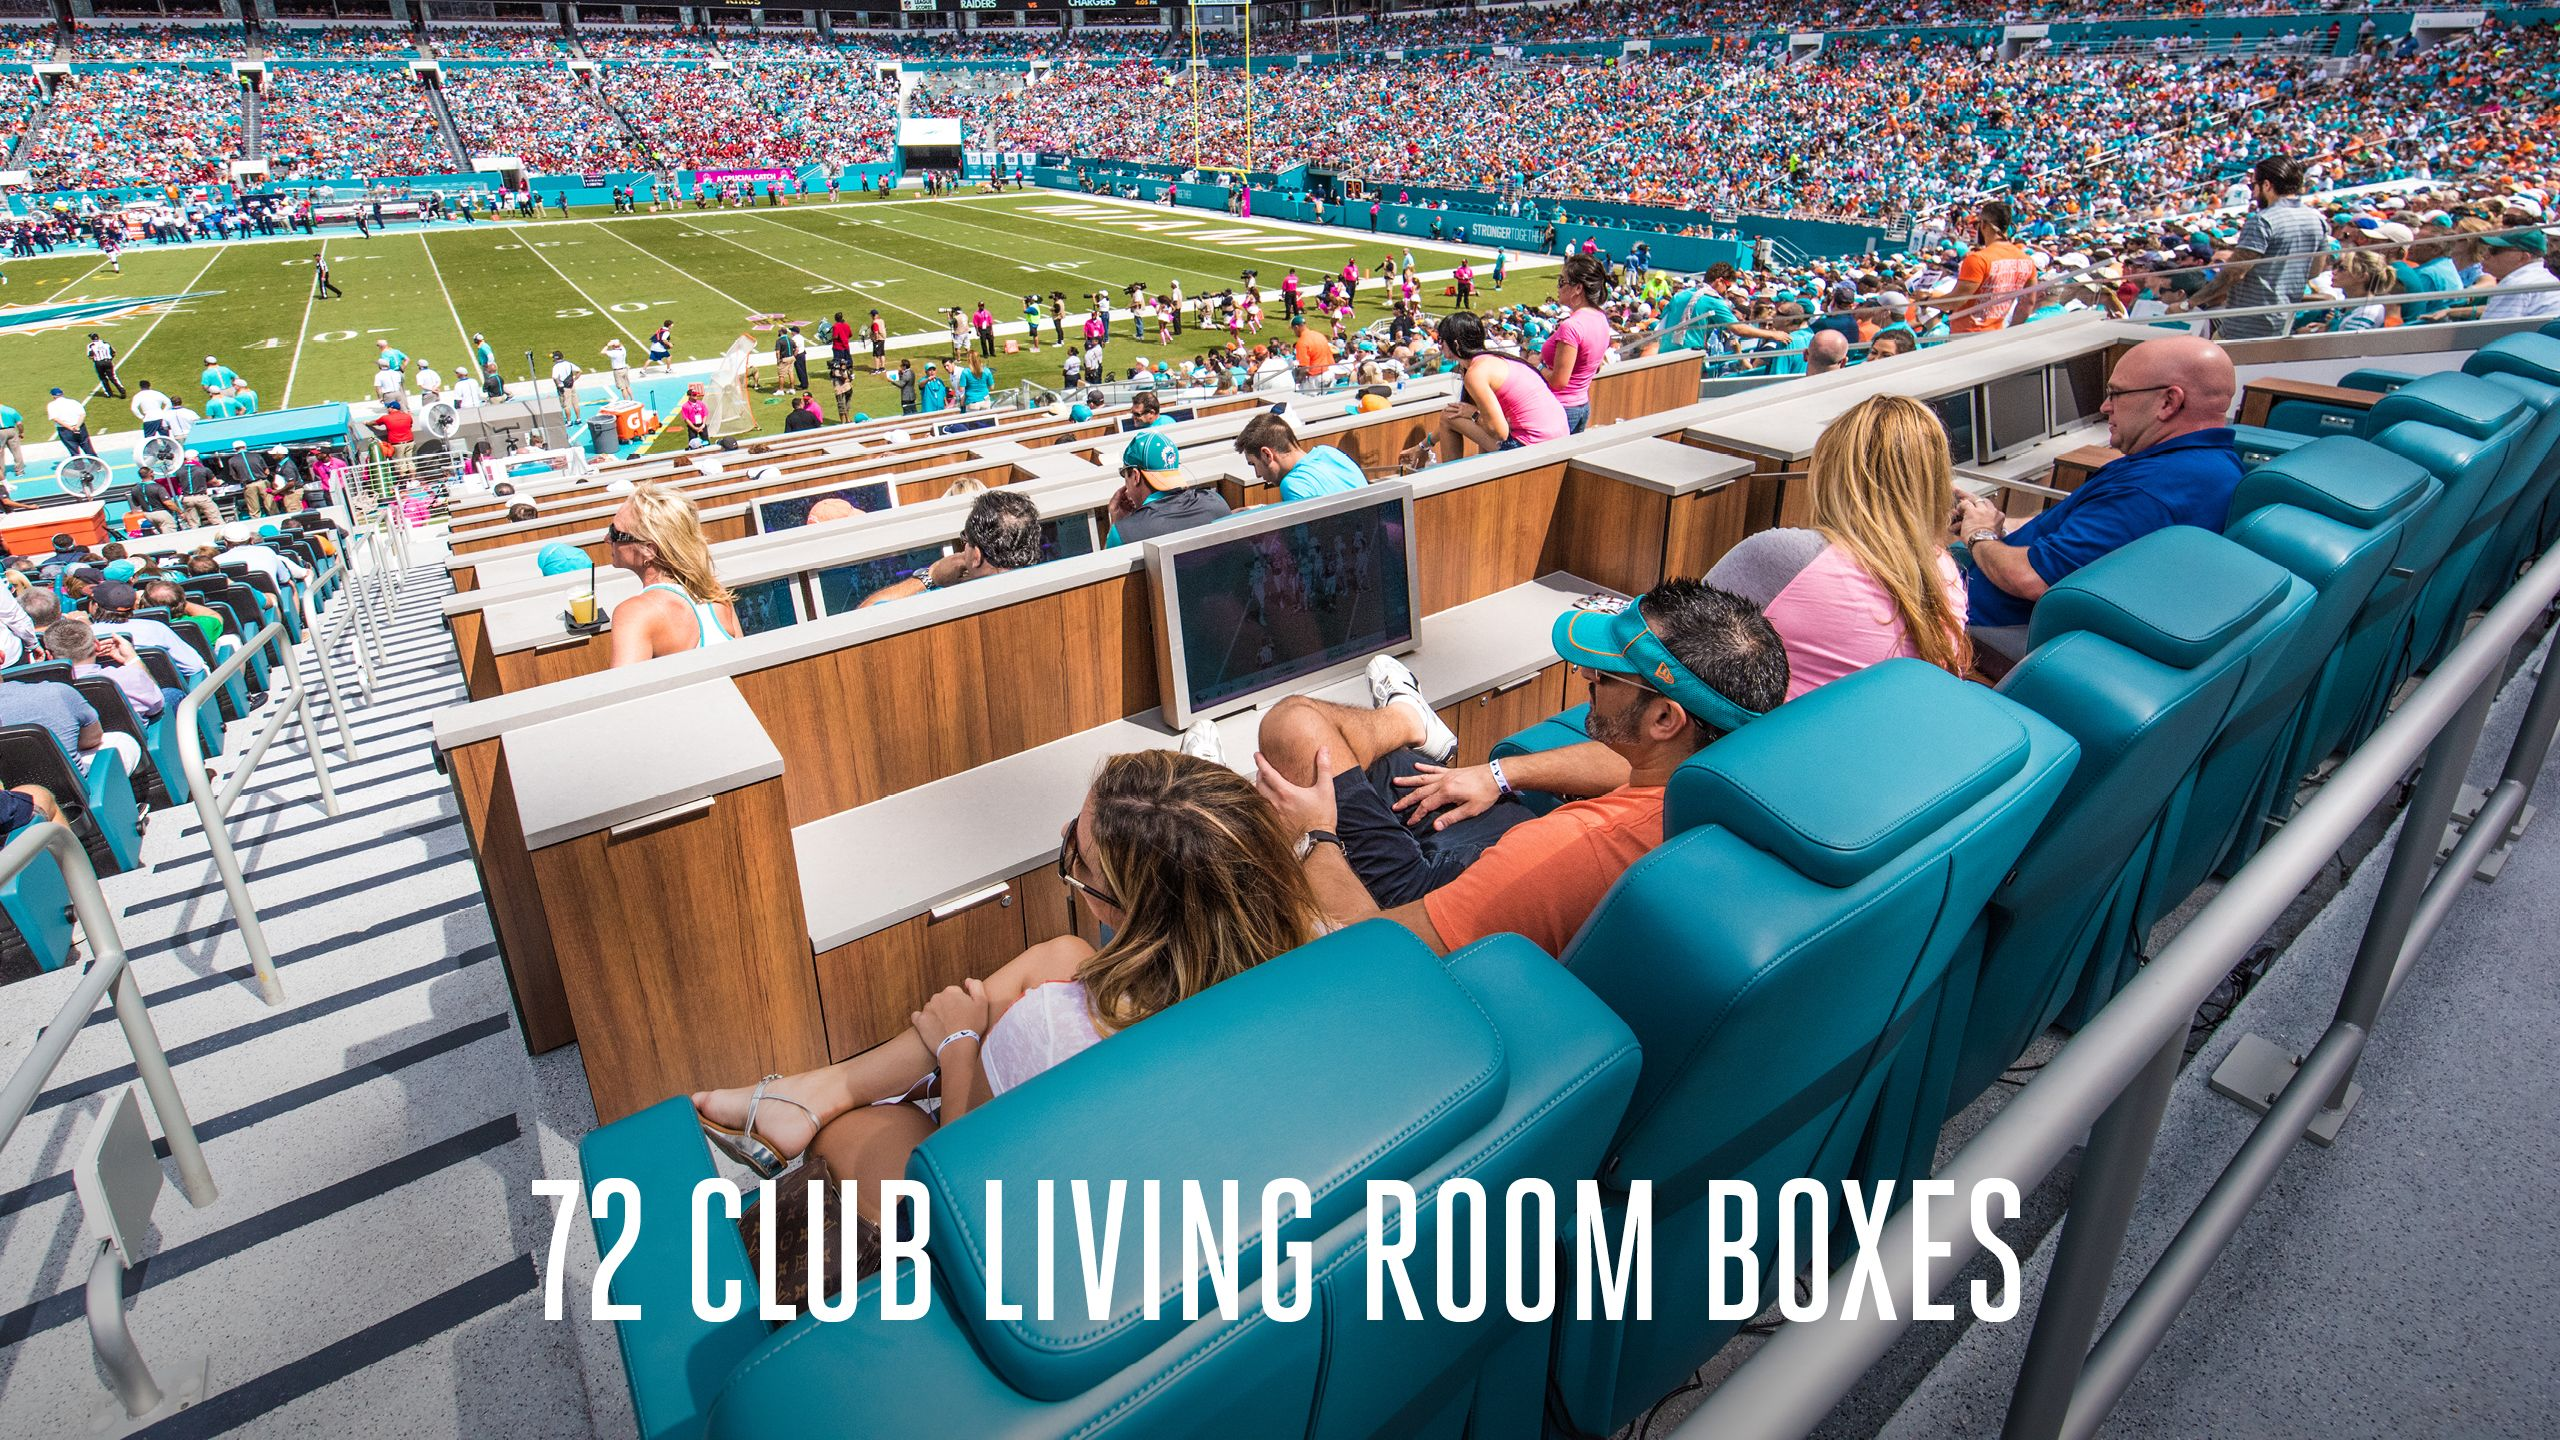 Header: 72 Club Living Room Boxes